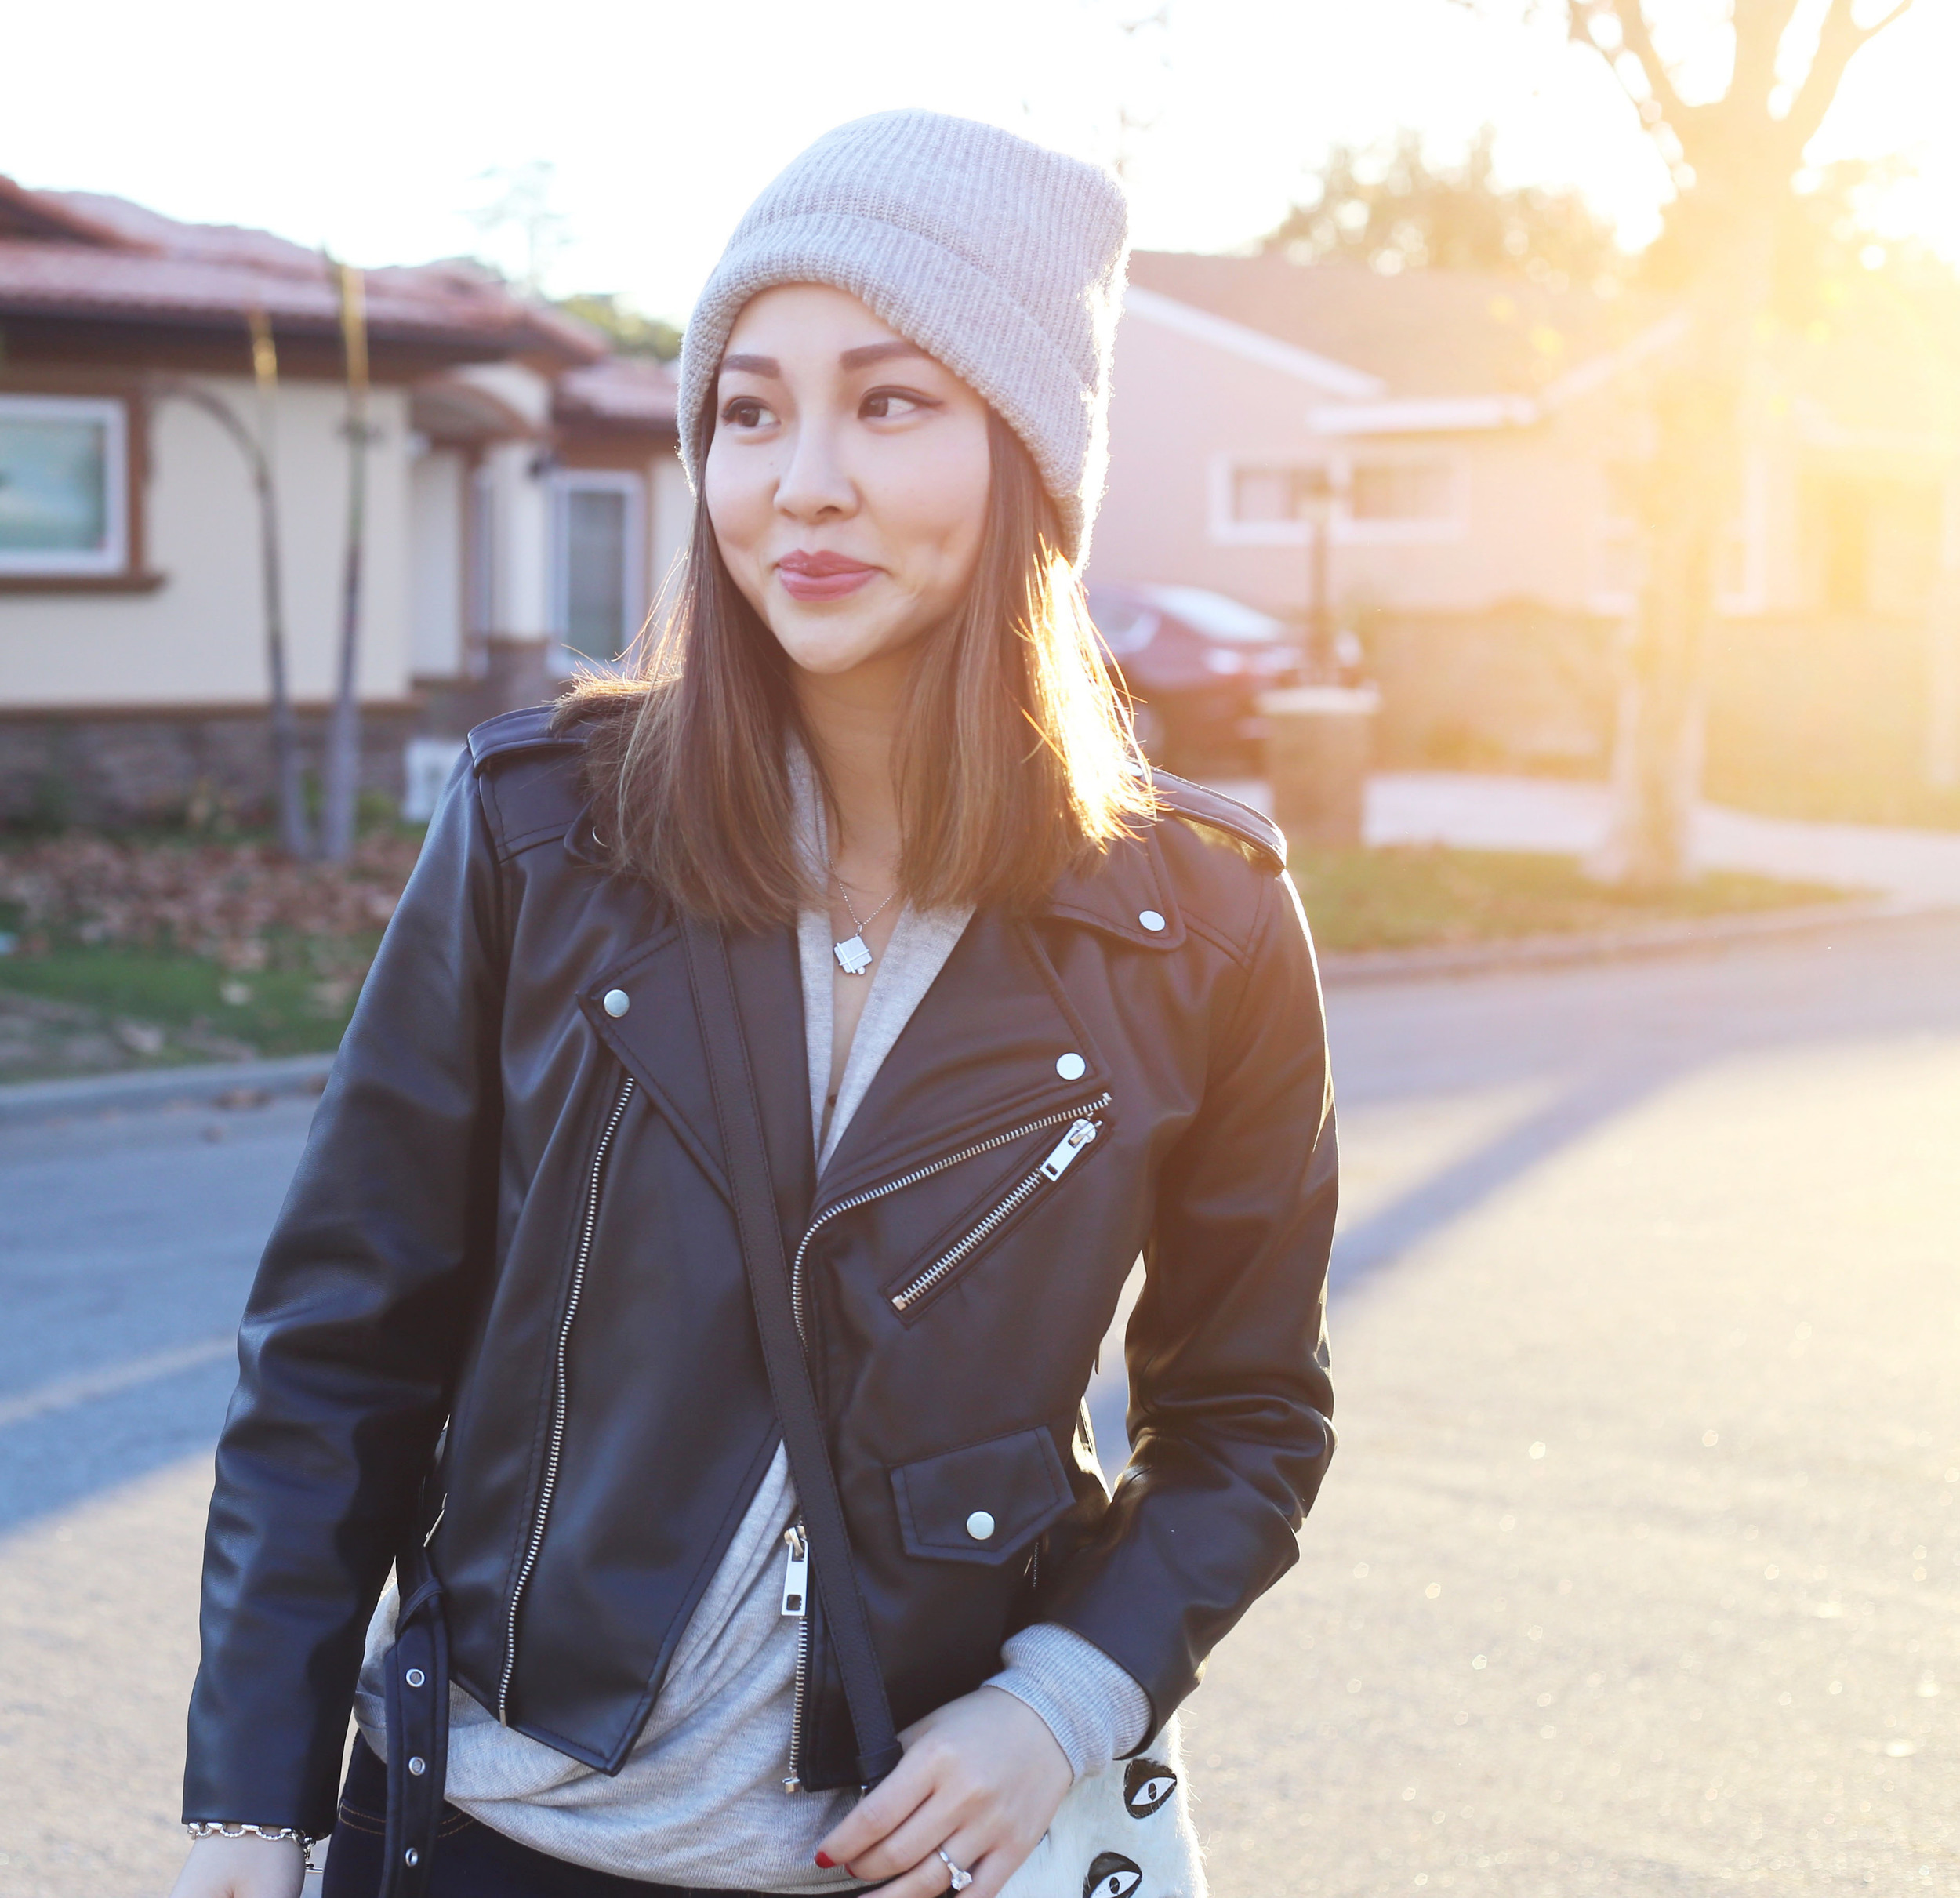 leather jacket outfit 2.jpg